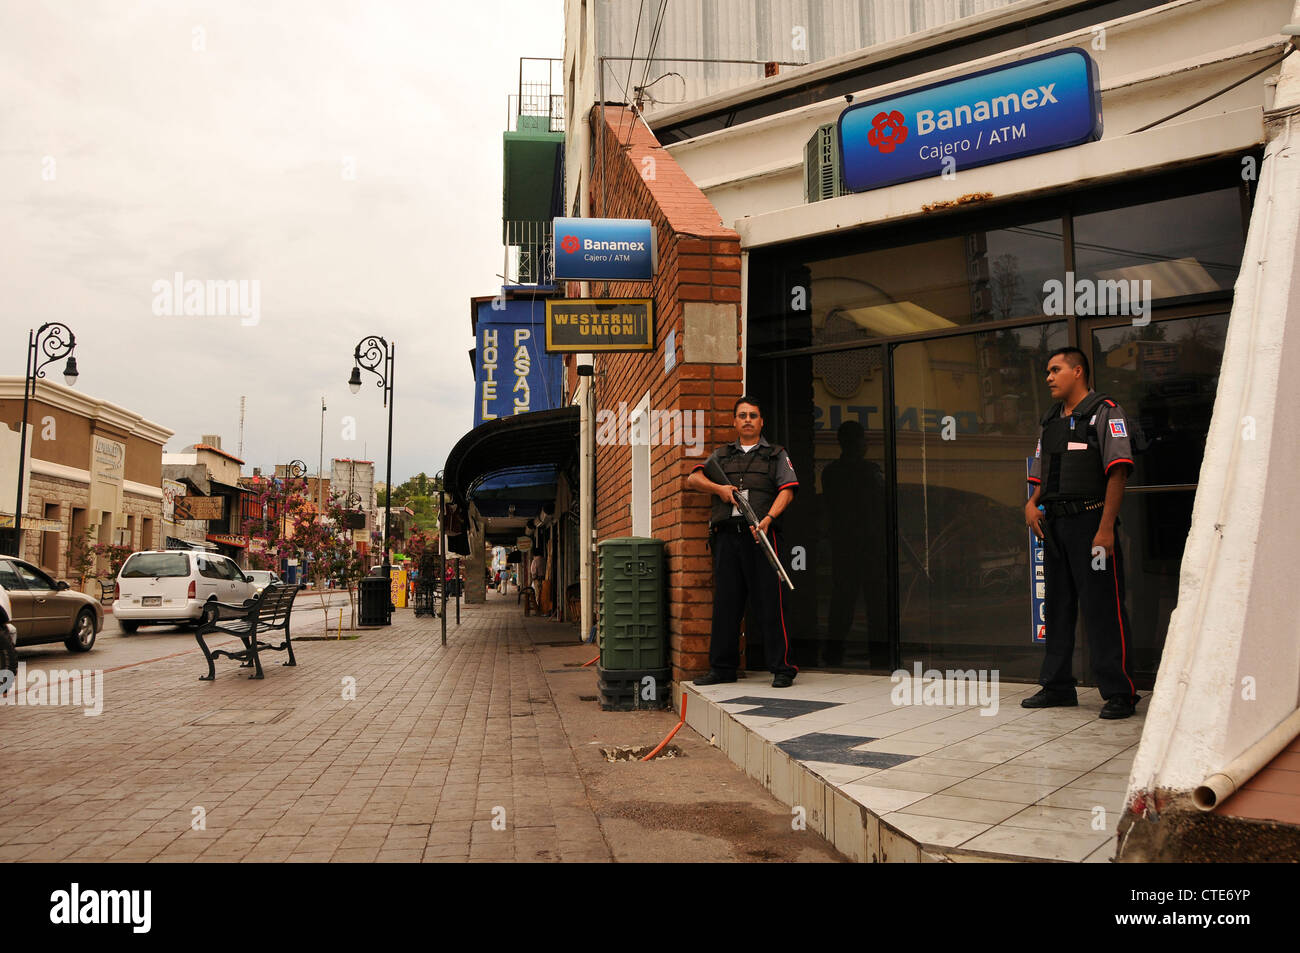 Security guards guard a bank along Calle Obregon in Nogales, Sonora, Mexico, across the border from Nogales, Arizona, - Stock Image